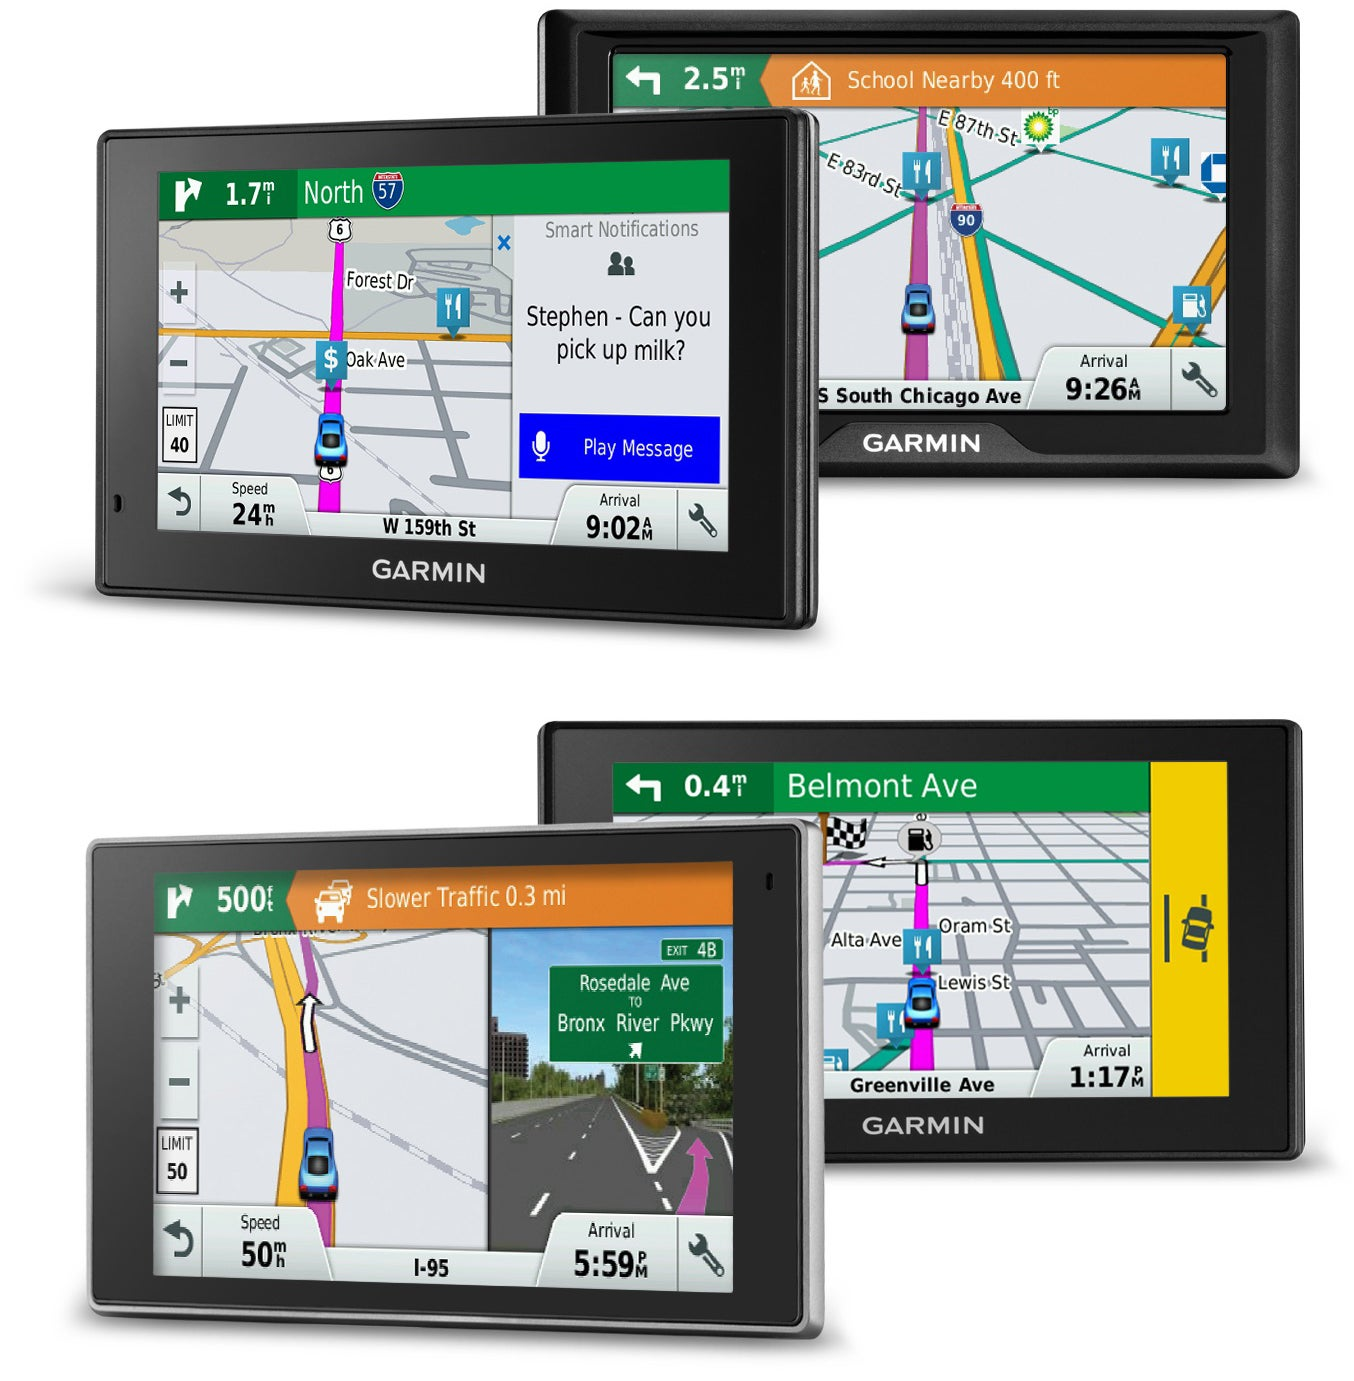 Garmin's New Sat Navs Can Spot Hazards on the Road Before You Do